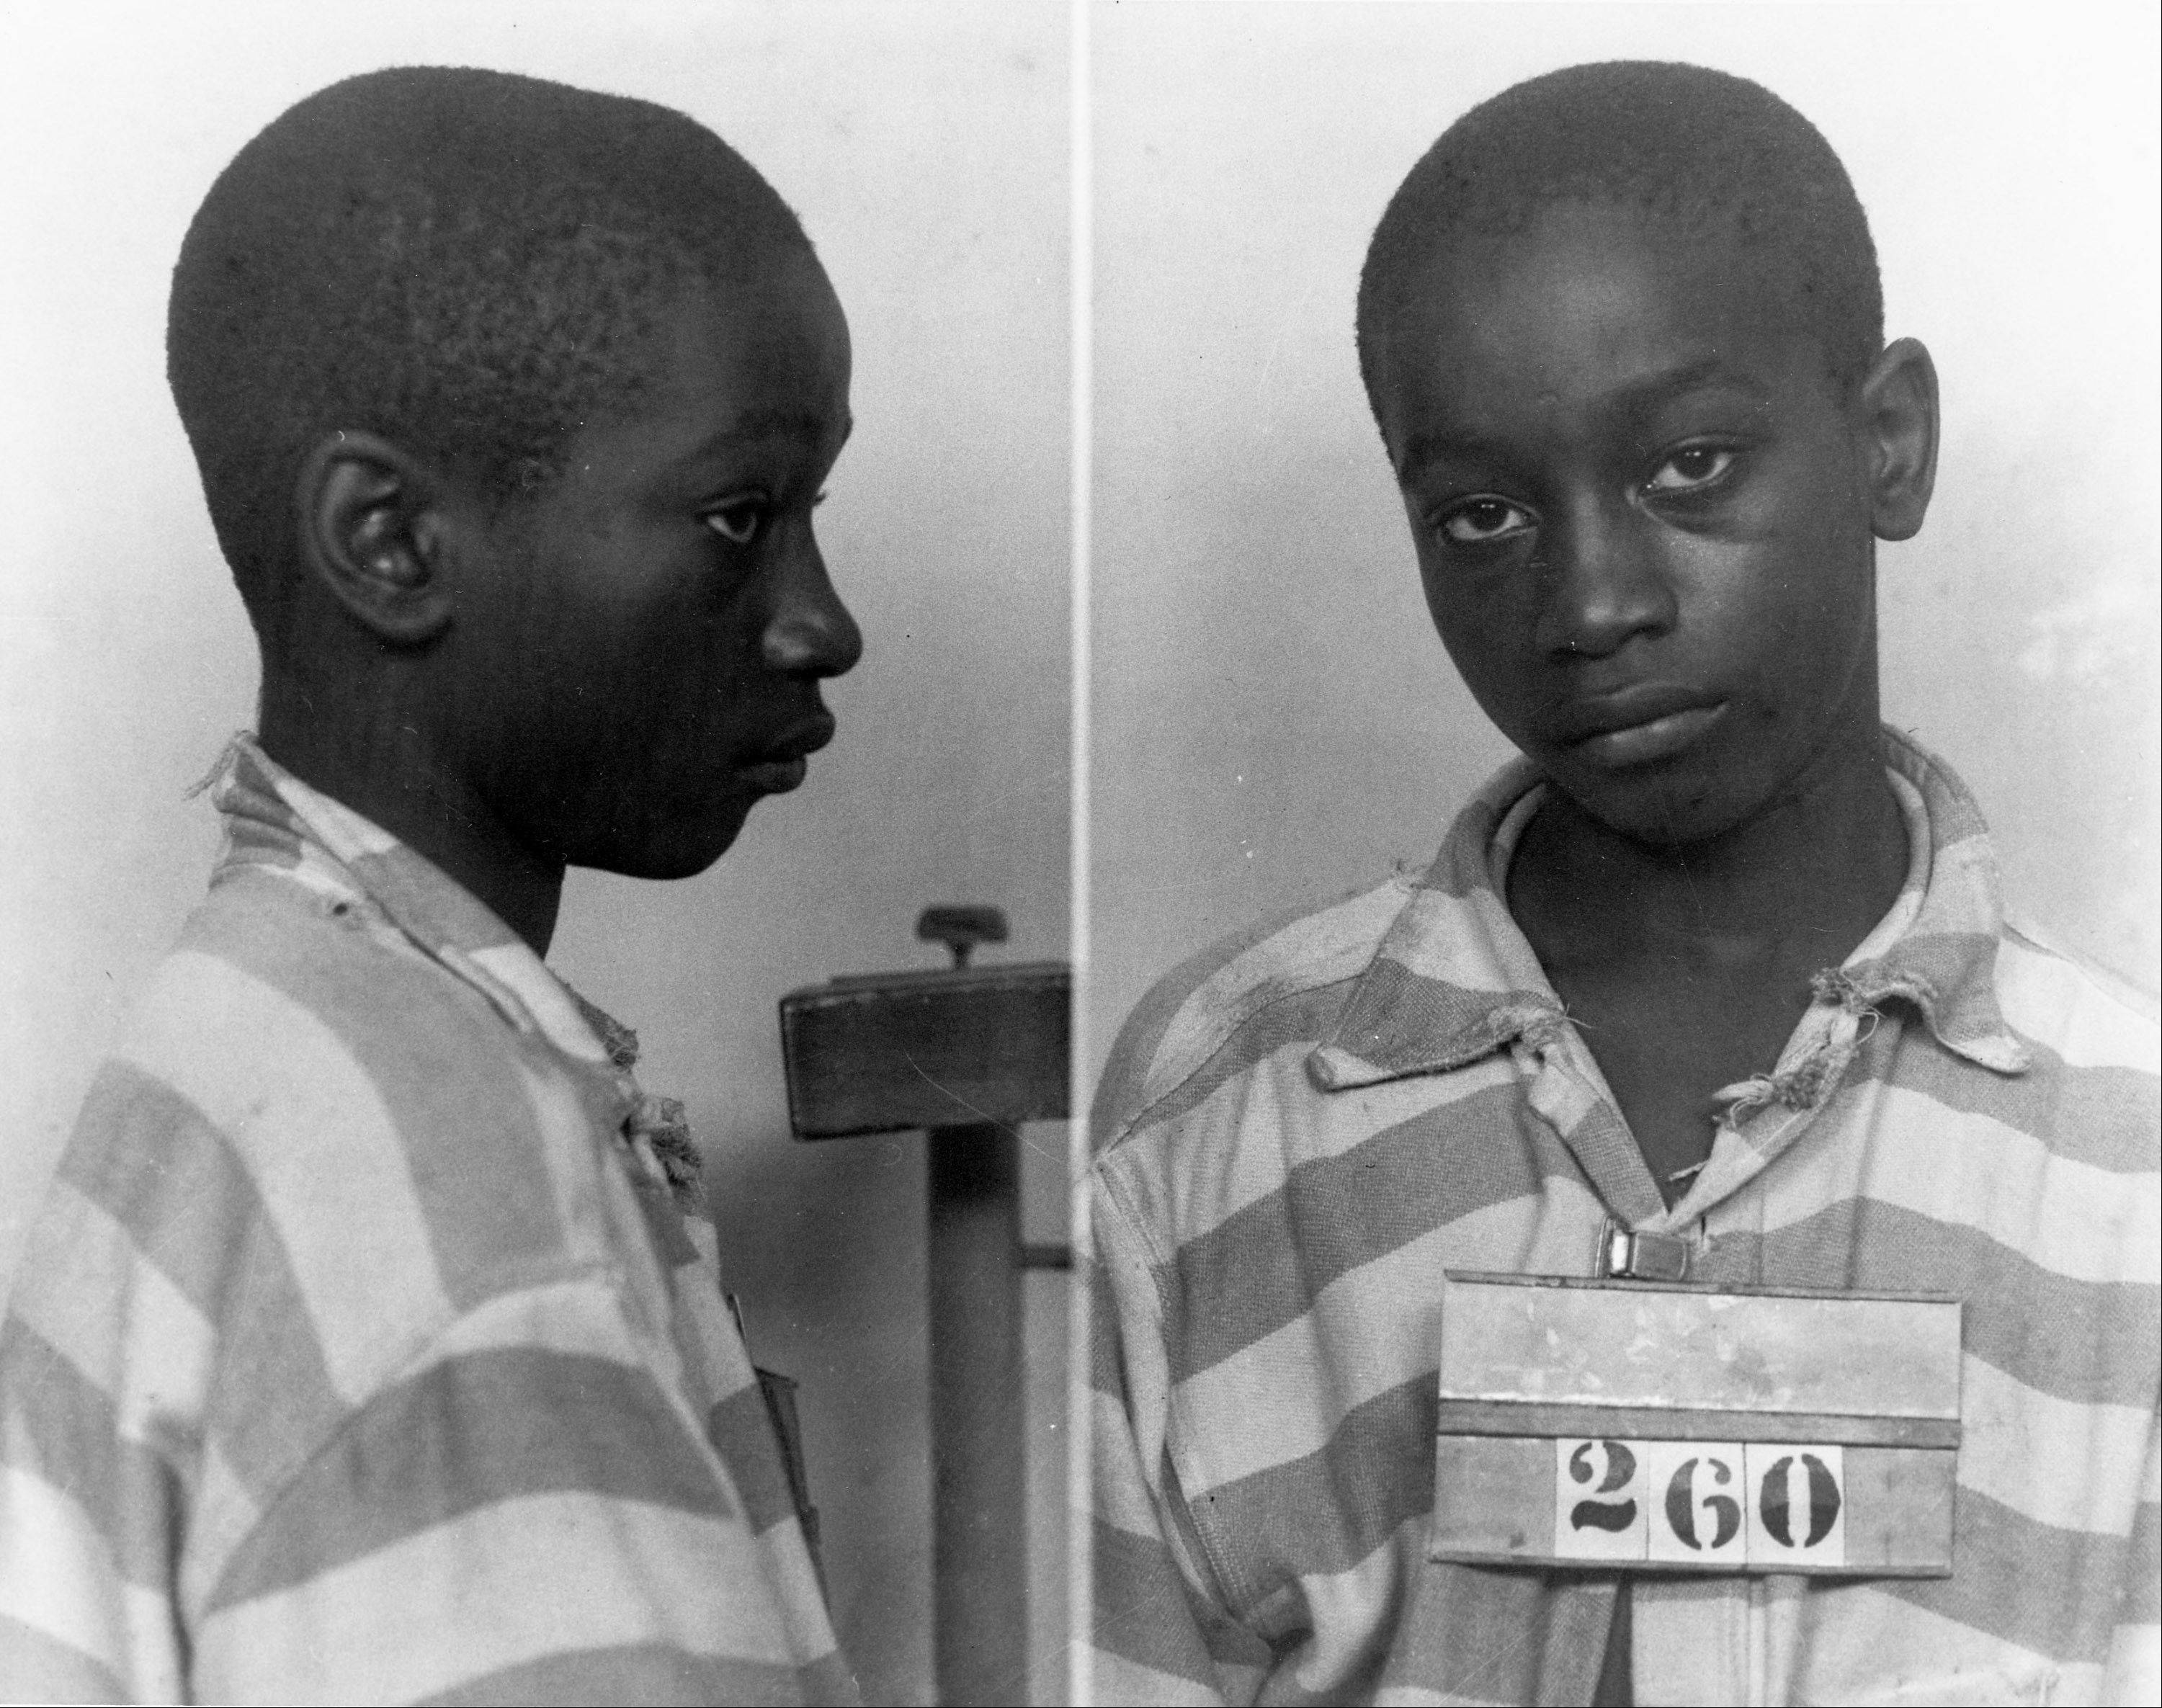 George Stinney Jr., the youngest person ever executed in South Carolina, in 1944. Supporters of Stinney plan to argue Tuesday, Jan. 21, 2014, that there wasn't enough evidence to find him guilty in 1944 of killing a 7-year-old and an 11-year-old girl.